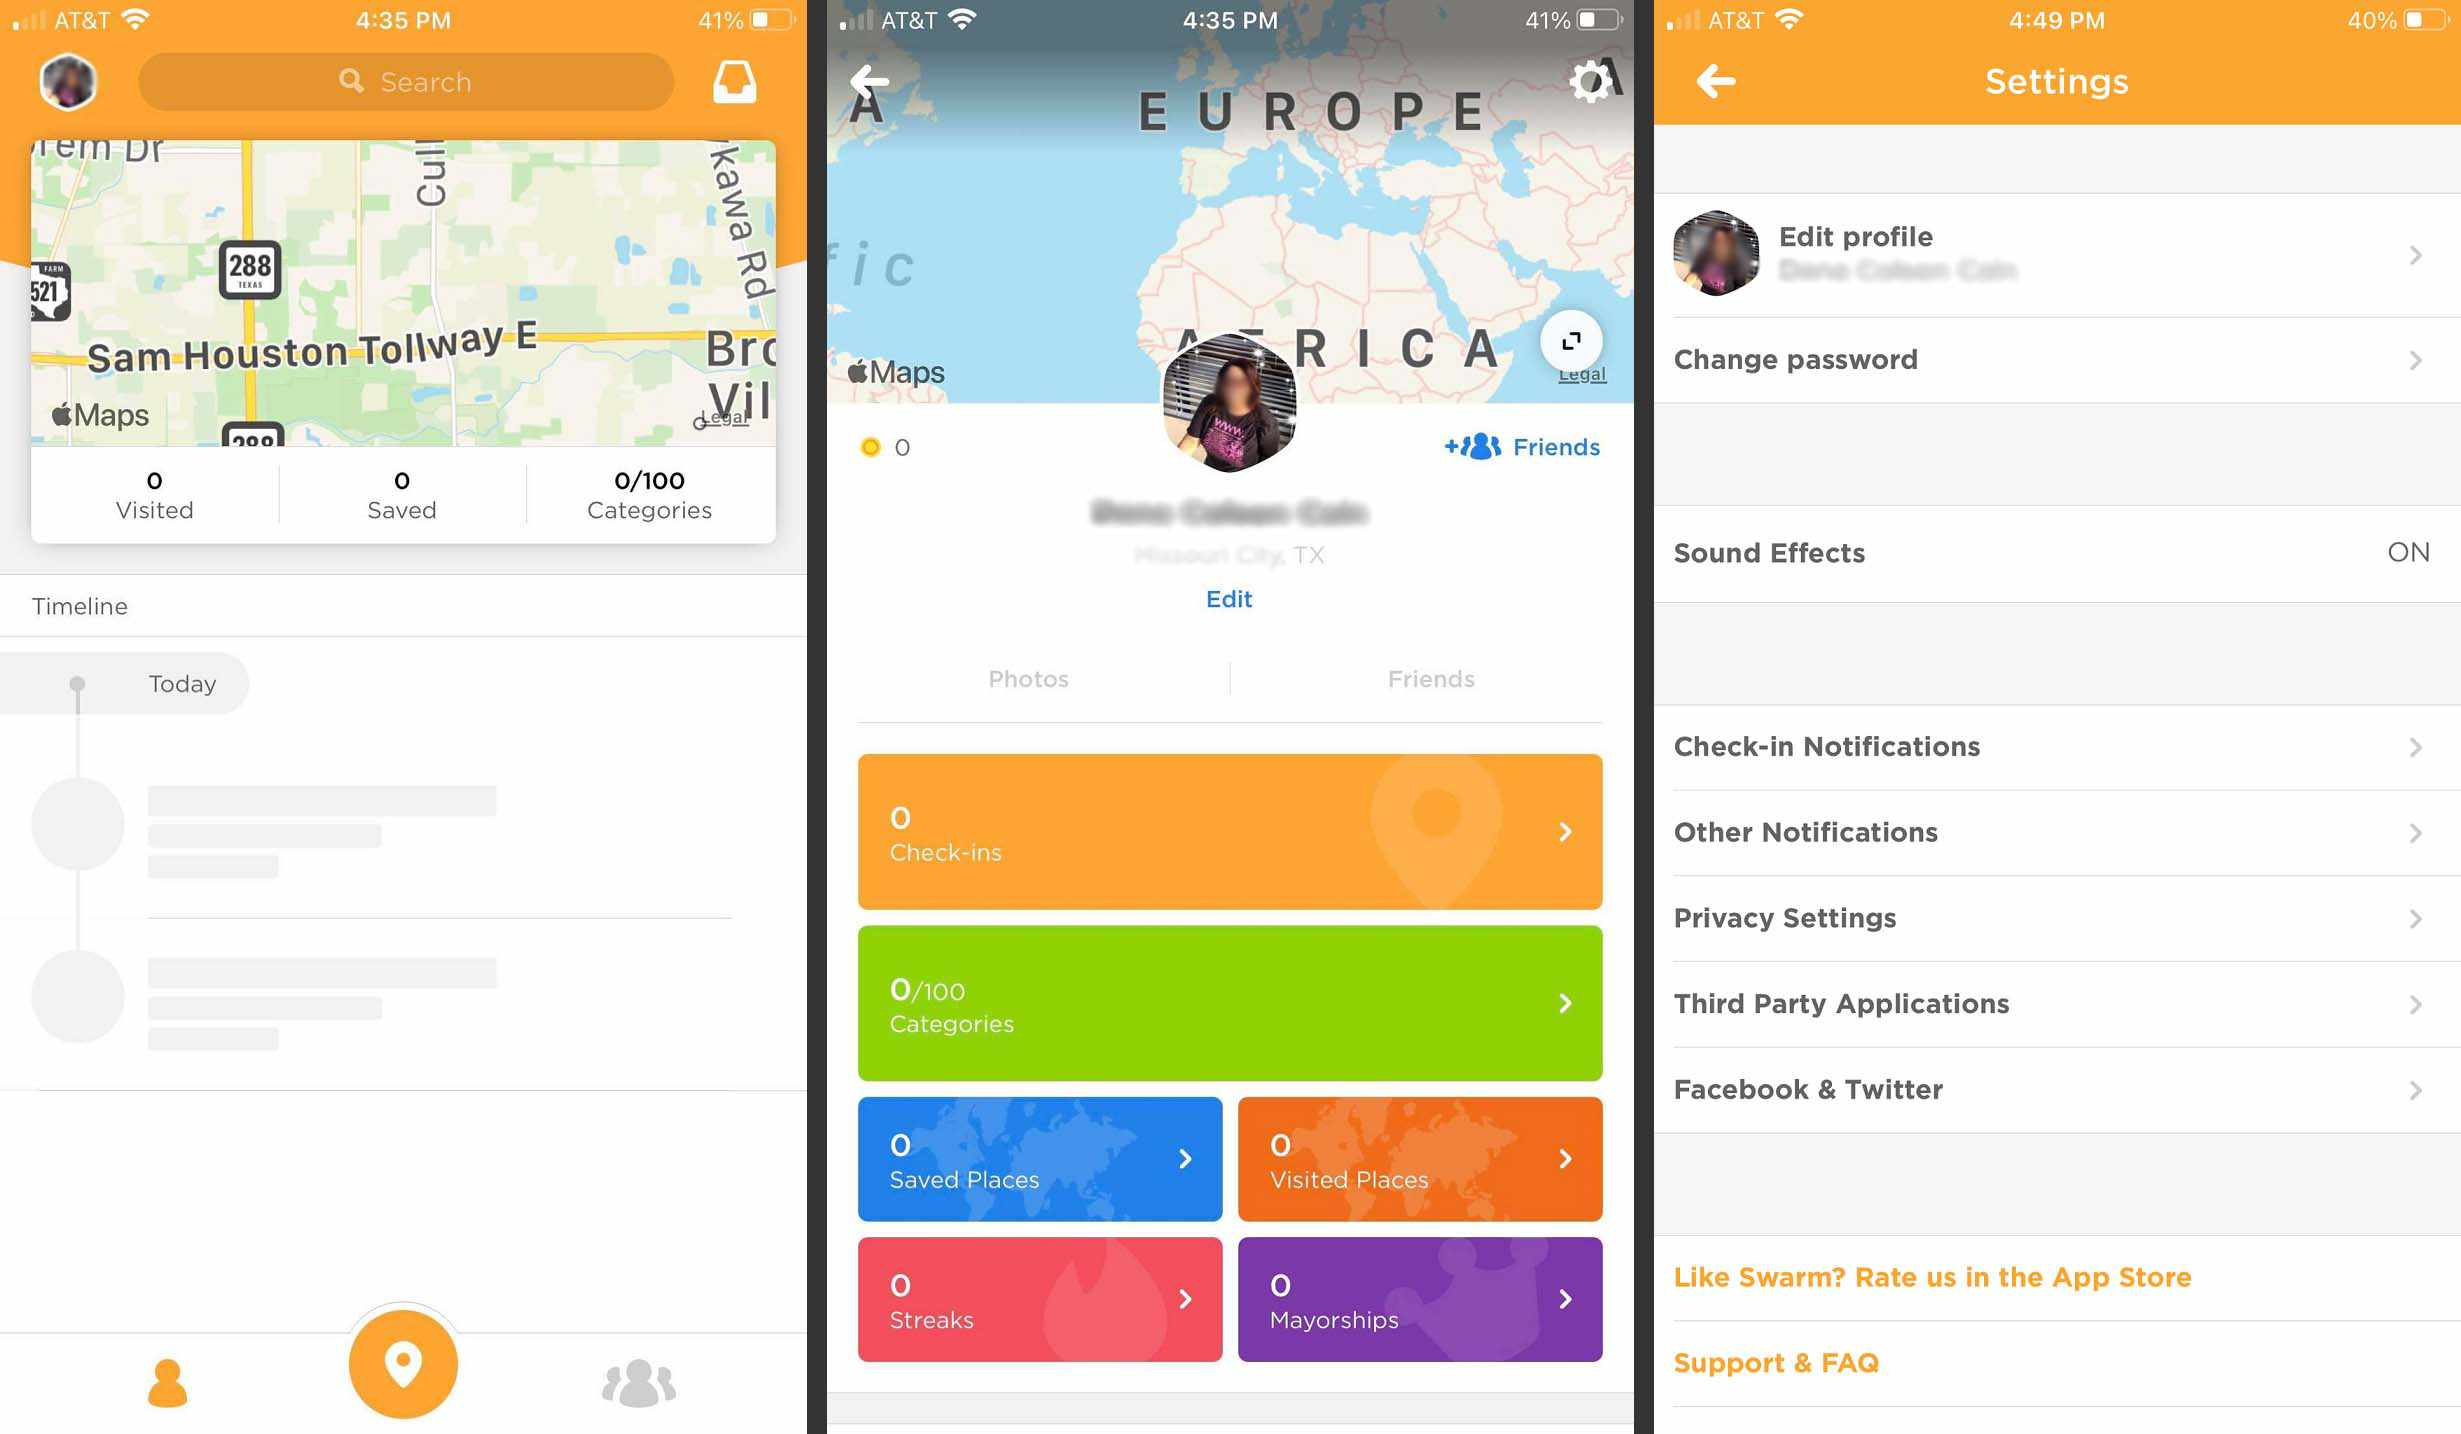 Profile and Privacy Settings on Swarm.